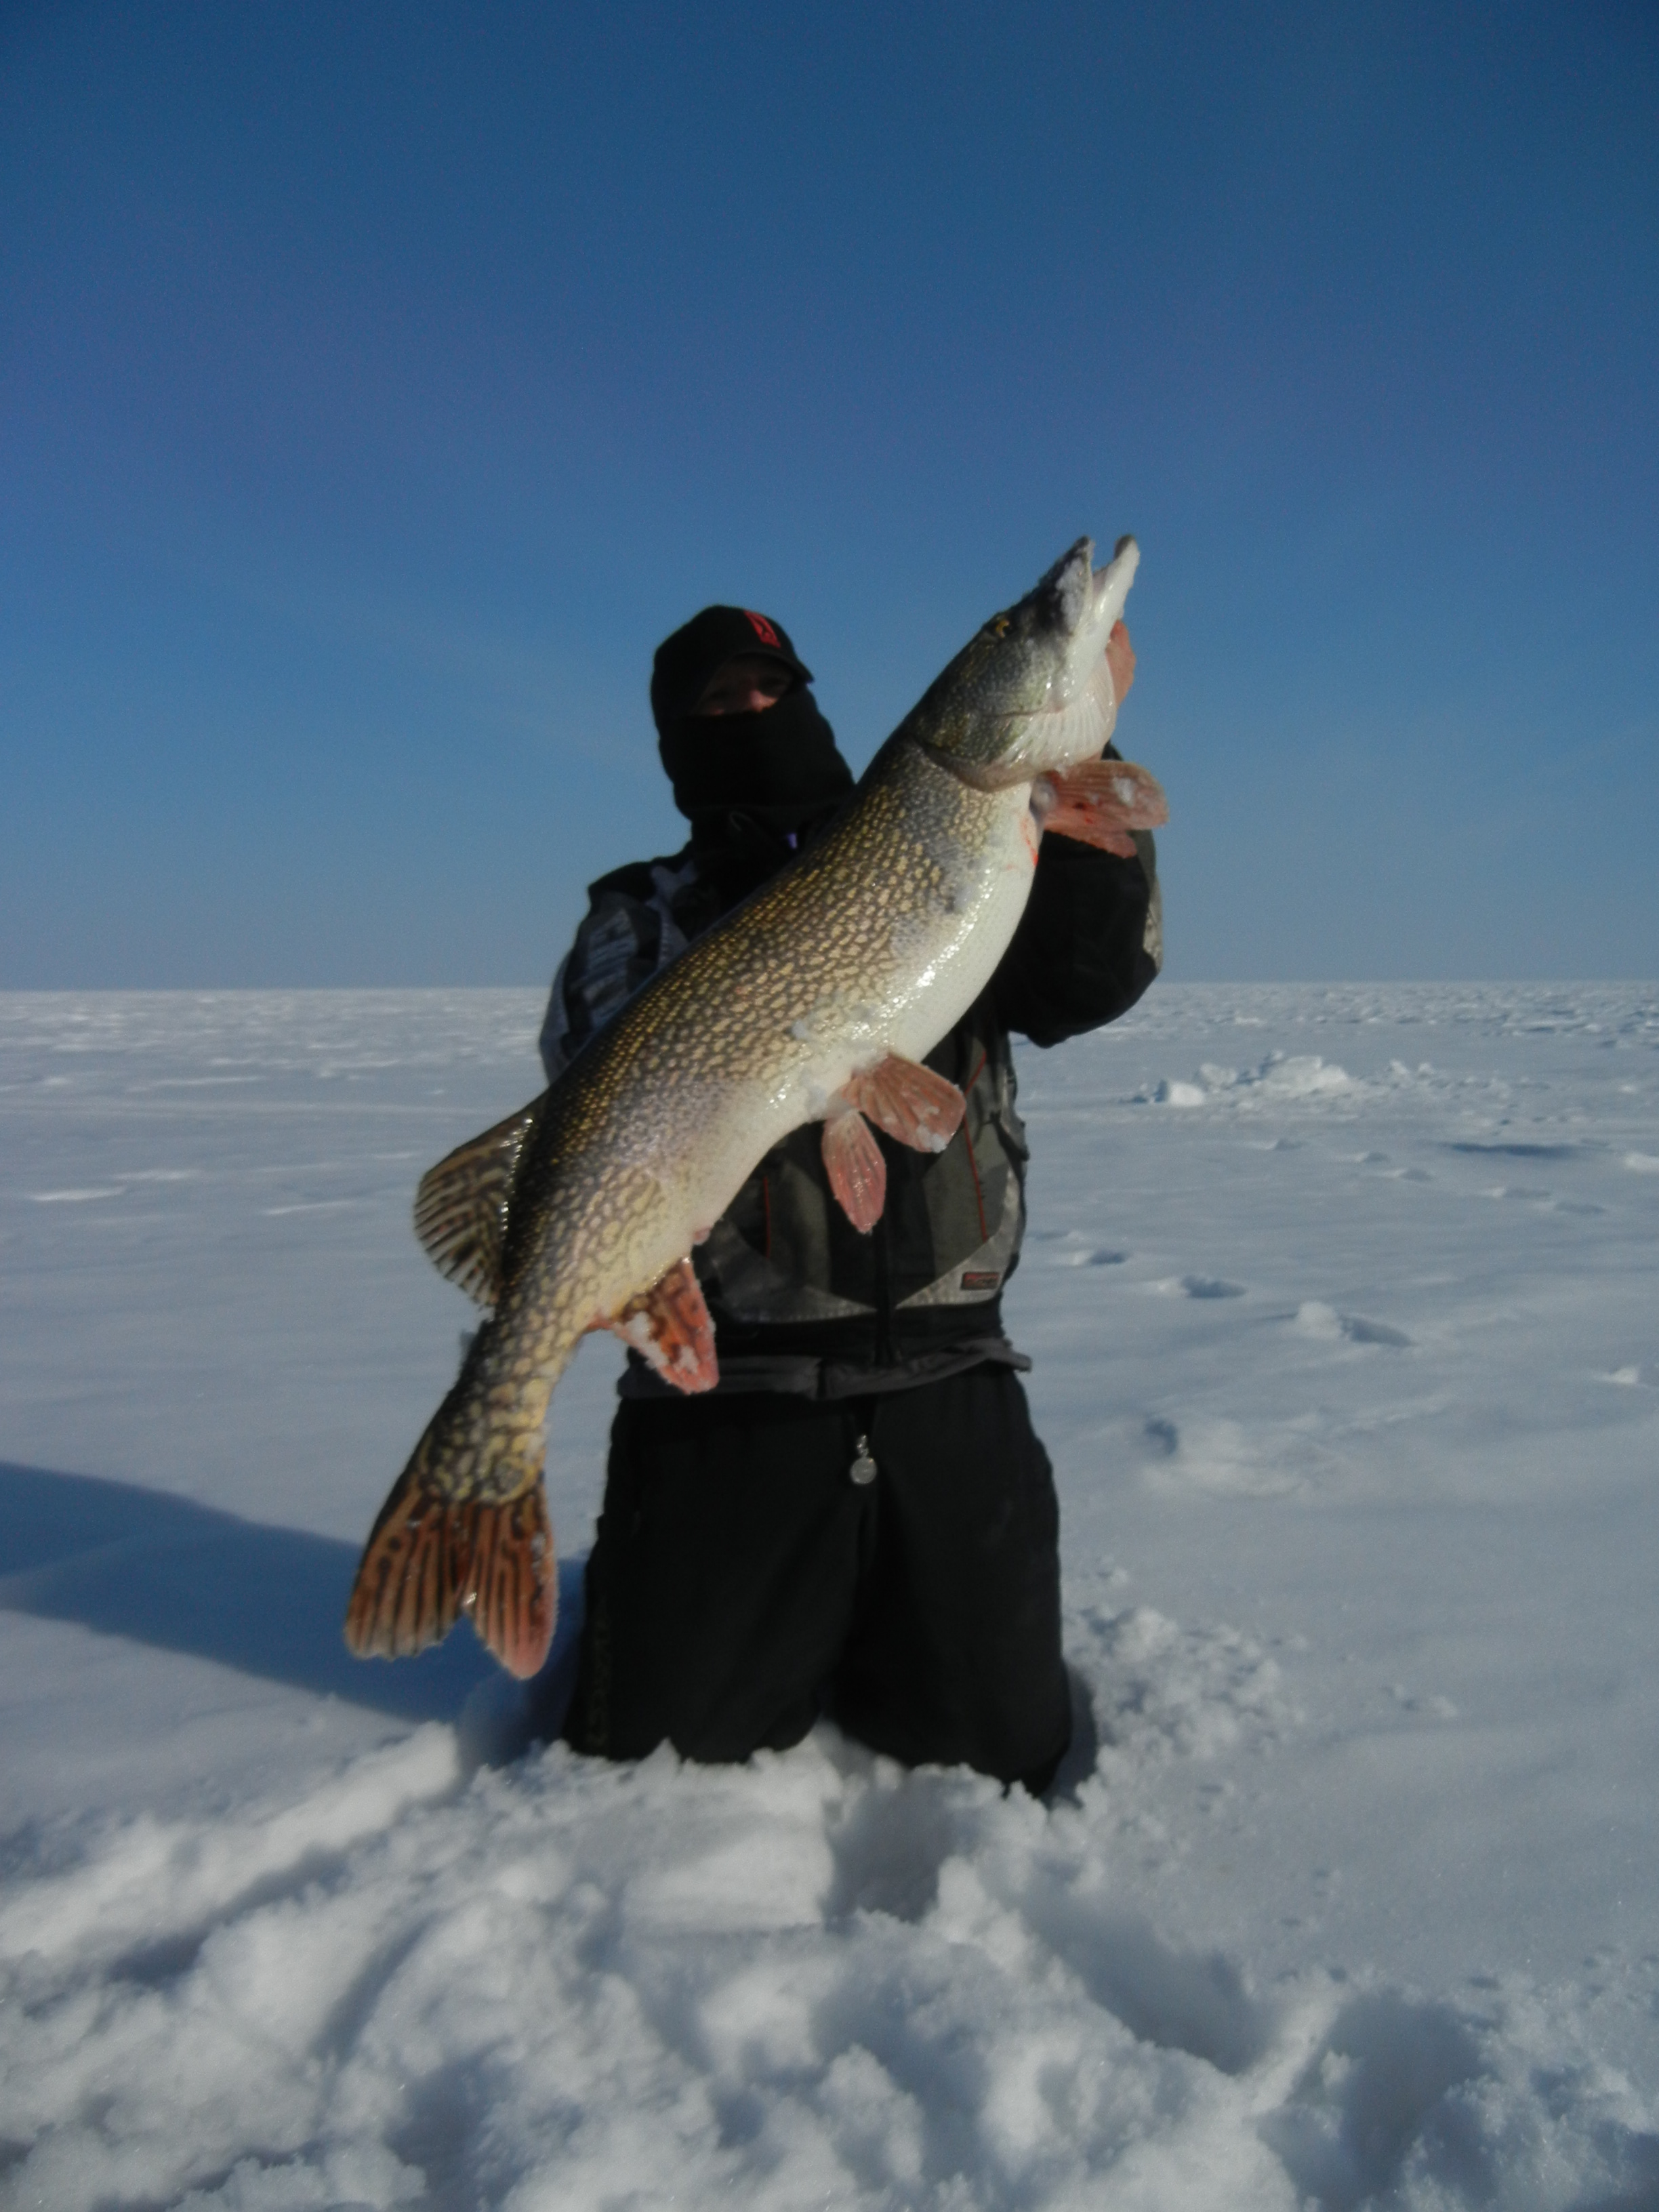 Josh Easthouse salol mn  Fish was caught on LOTW on a tip up with a sucker minnow.  Species: